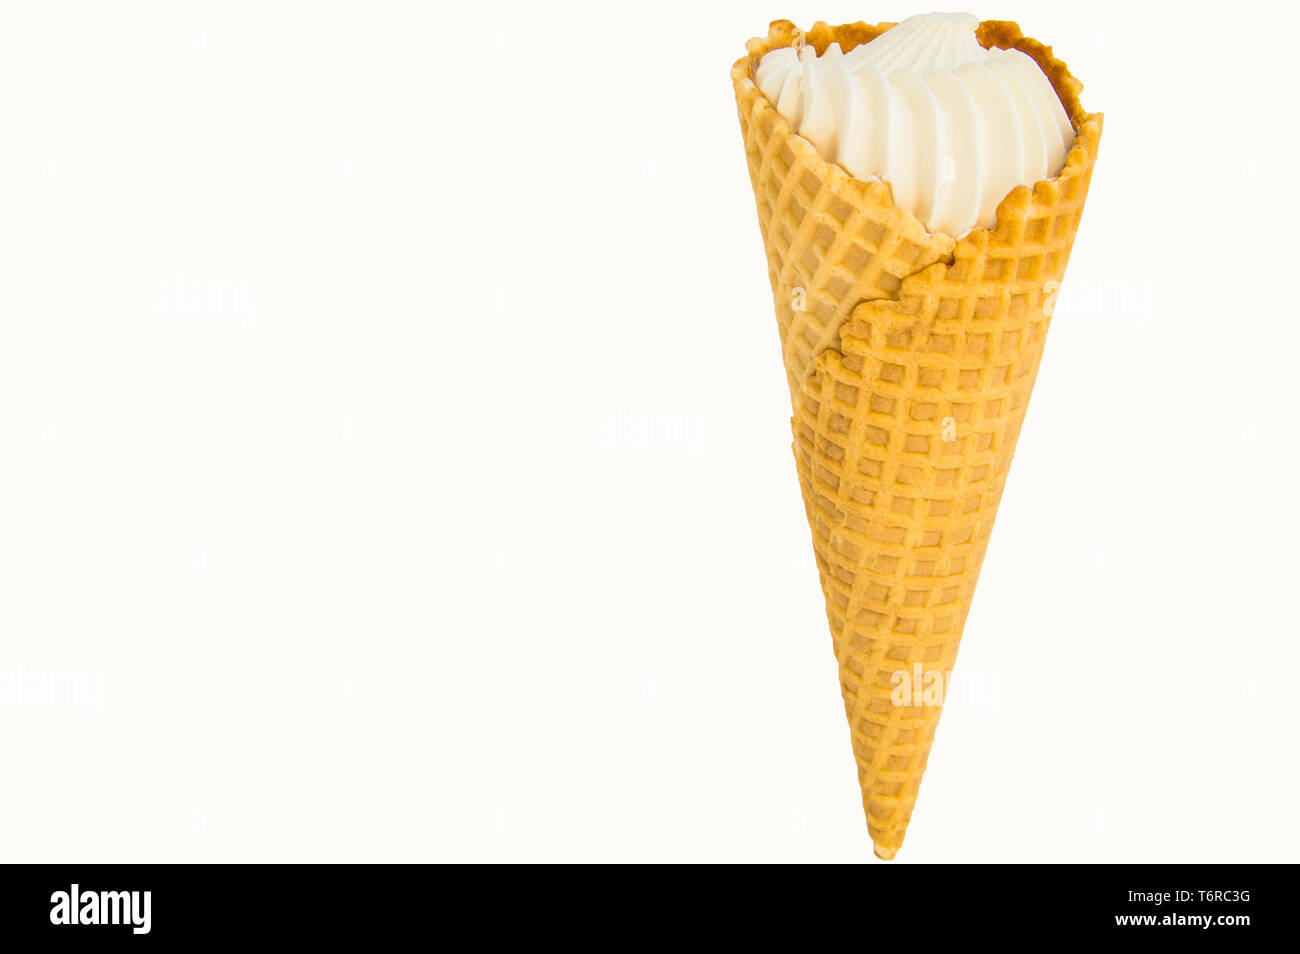 Waffle vanilla ice cream cone isolated on white background by clipping with copy space. - Stock Image